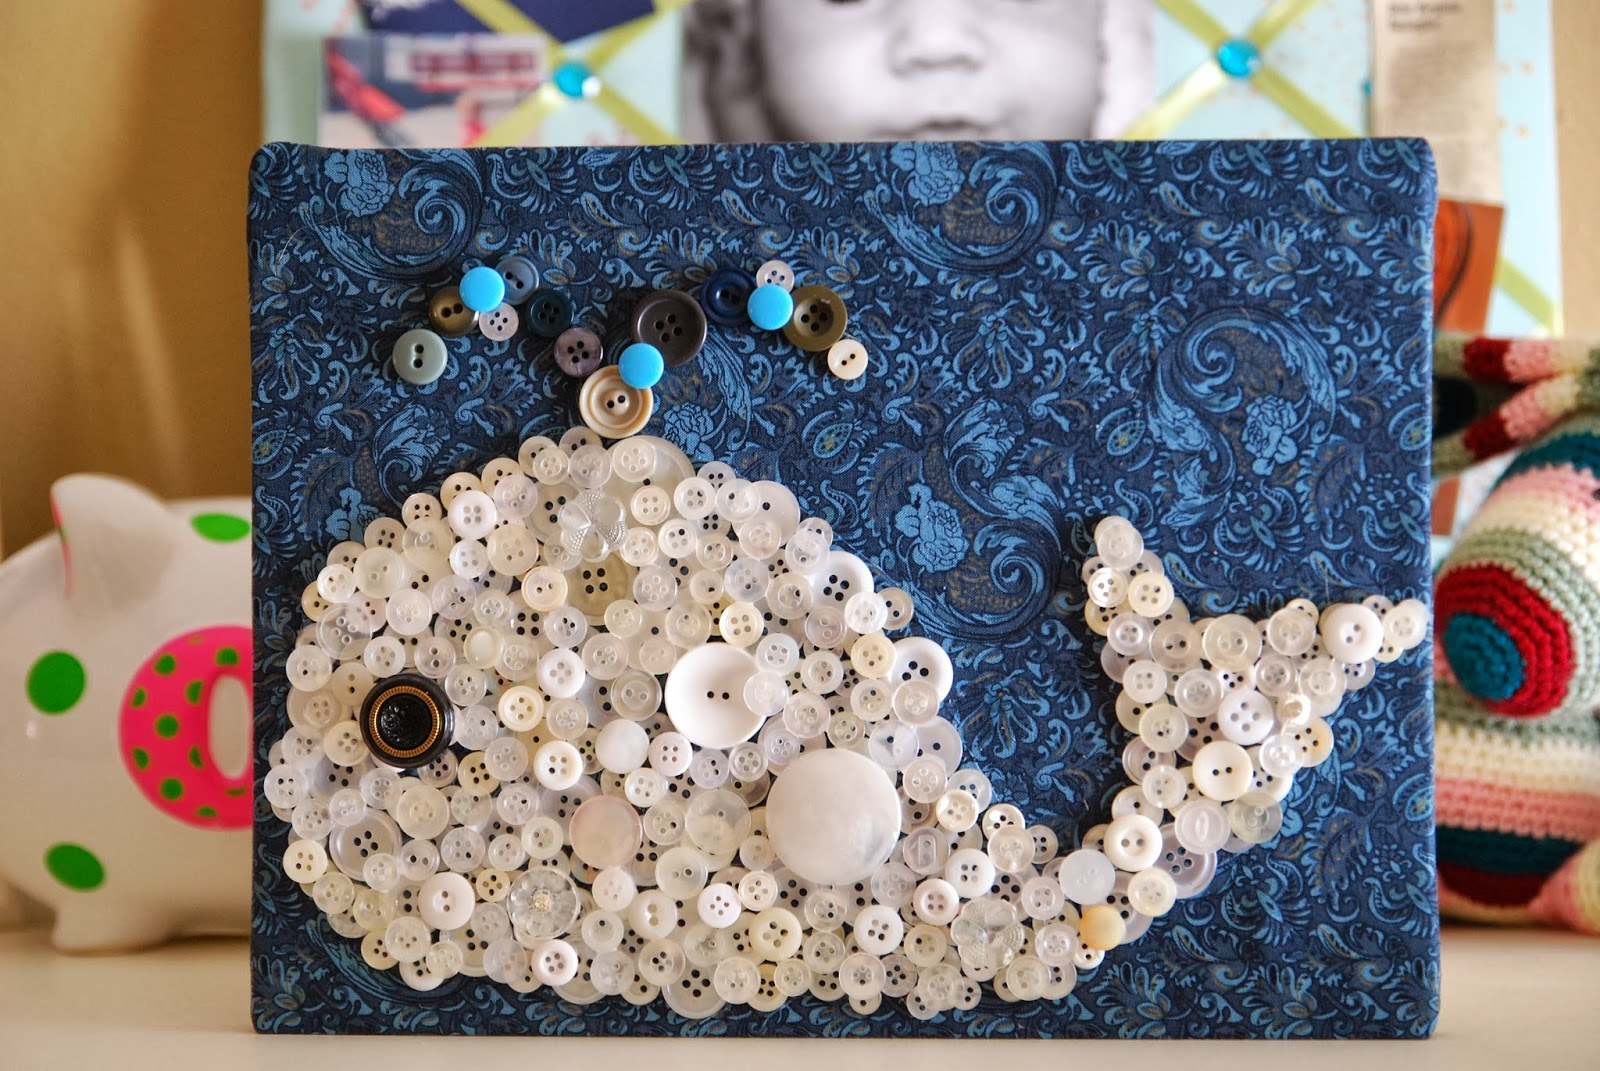 Vet School Widow | Whale Silhouette Wall Hanging from Vintage Buttons - Button Art for Toddler Room DIY